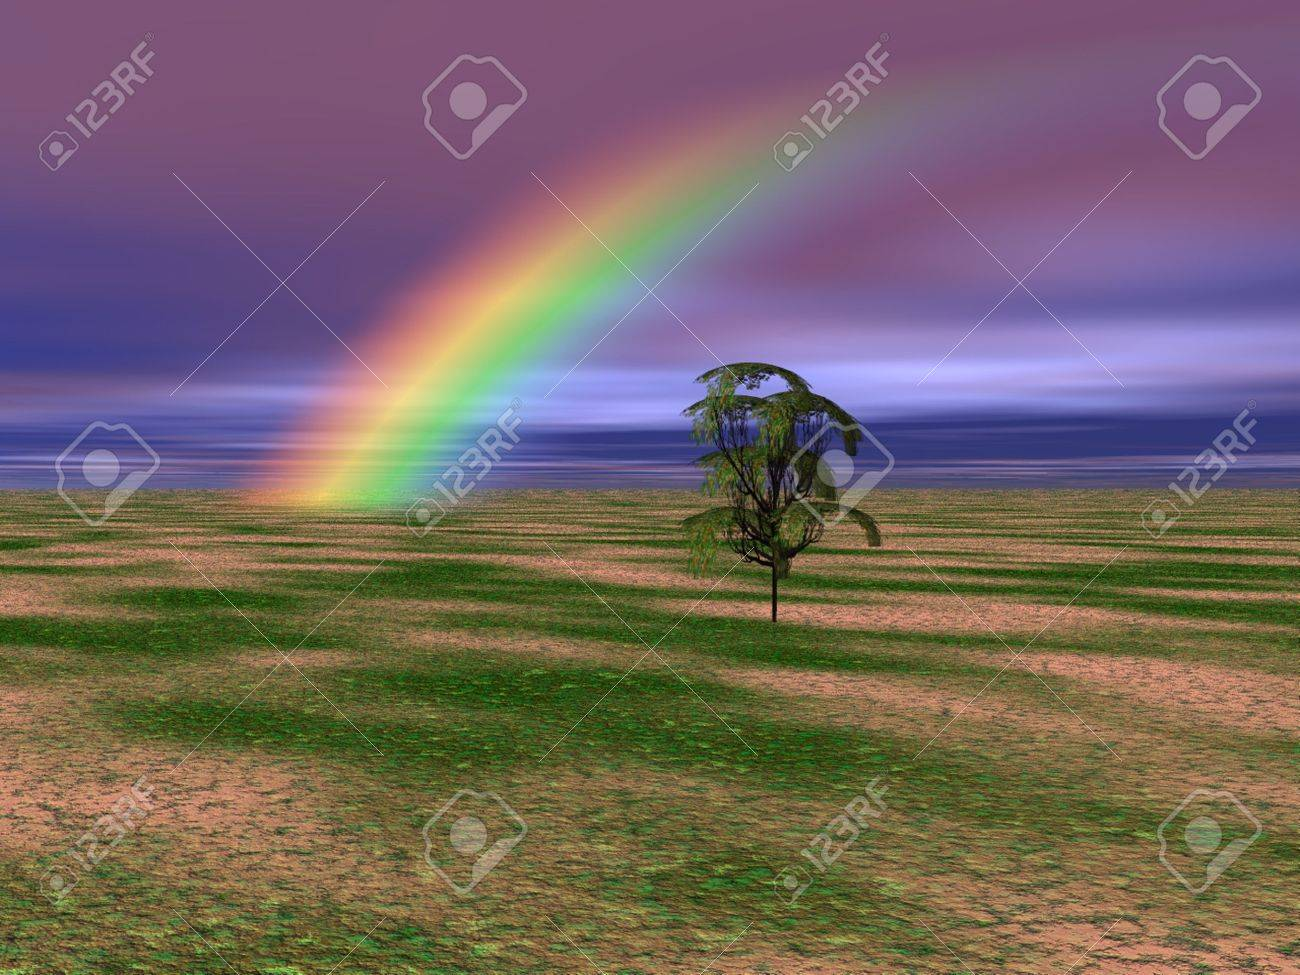 Solitary tree with a brilliant rainbow in the background of this landscape. Stock Photo - 4808943